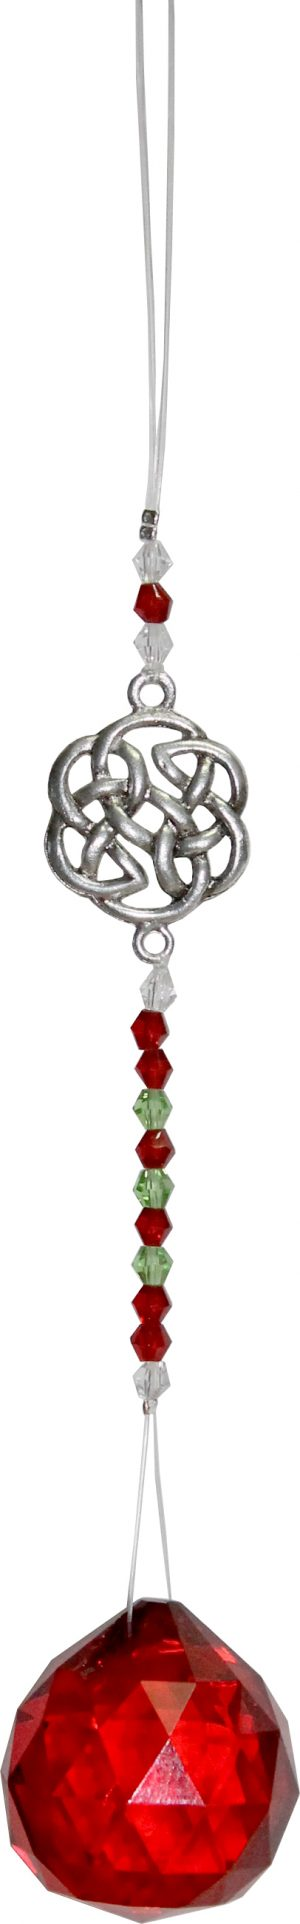 Suspended Crystal Cut Glass with Beads  Celtic Button - Red